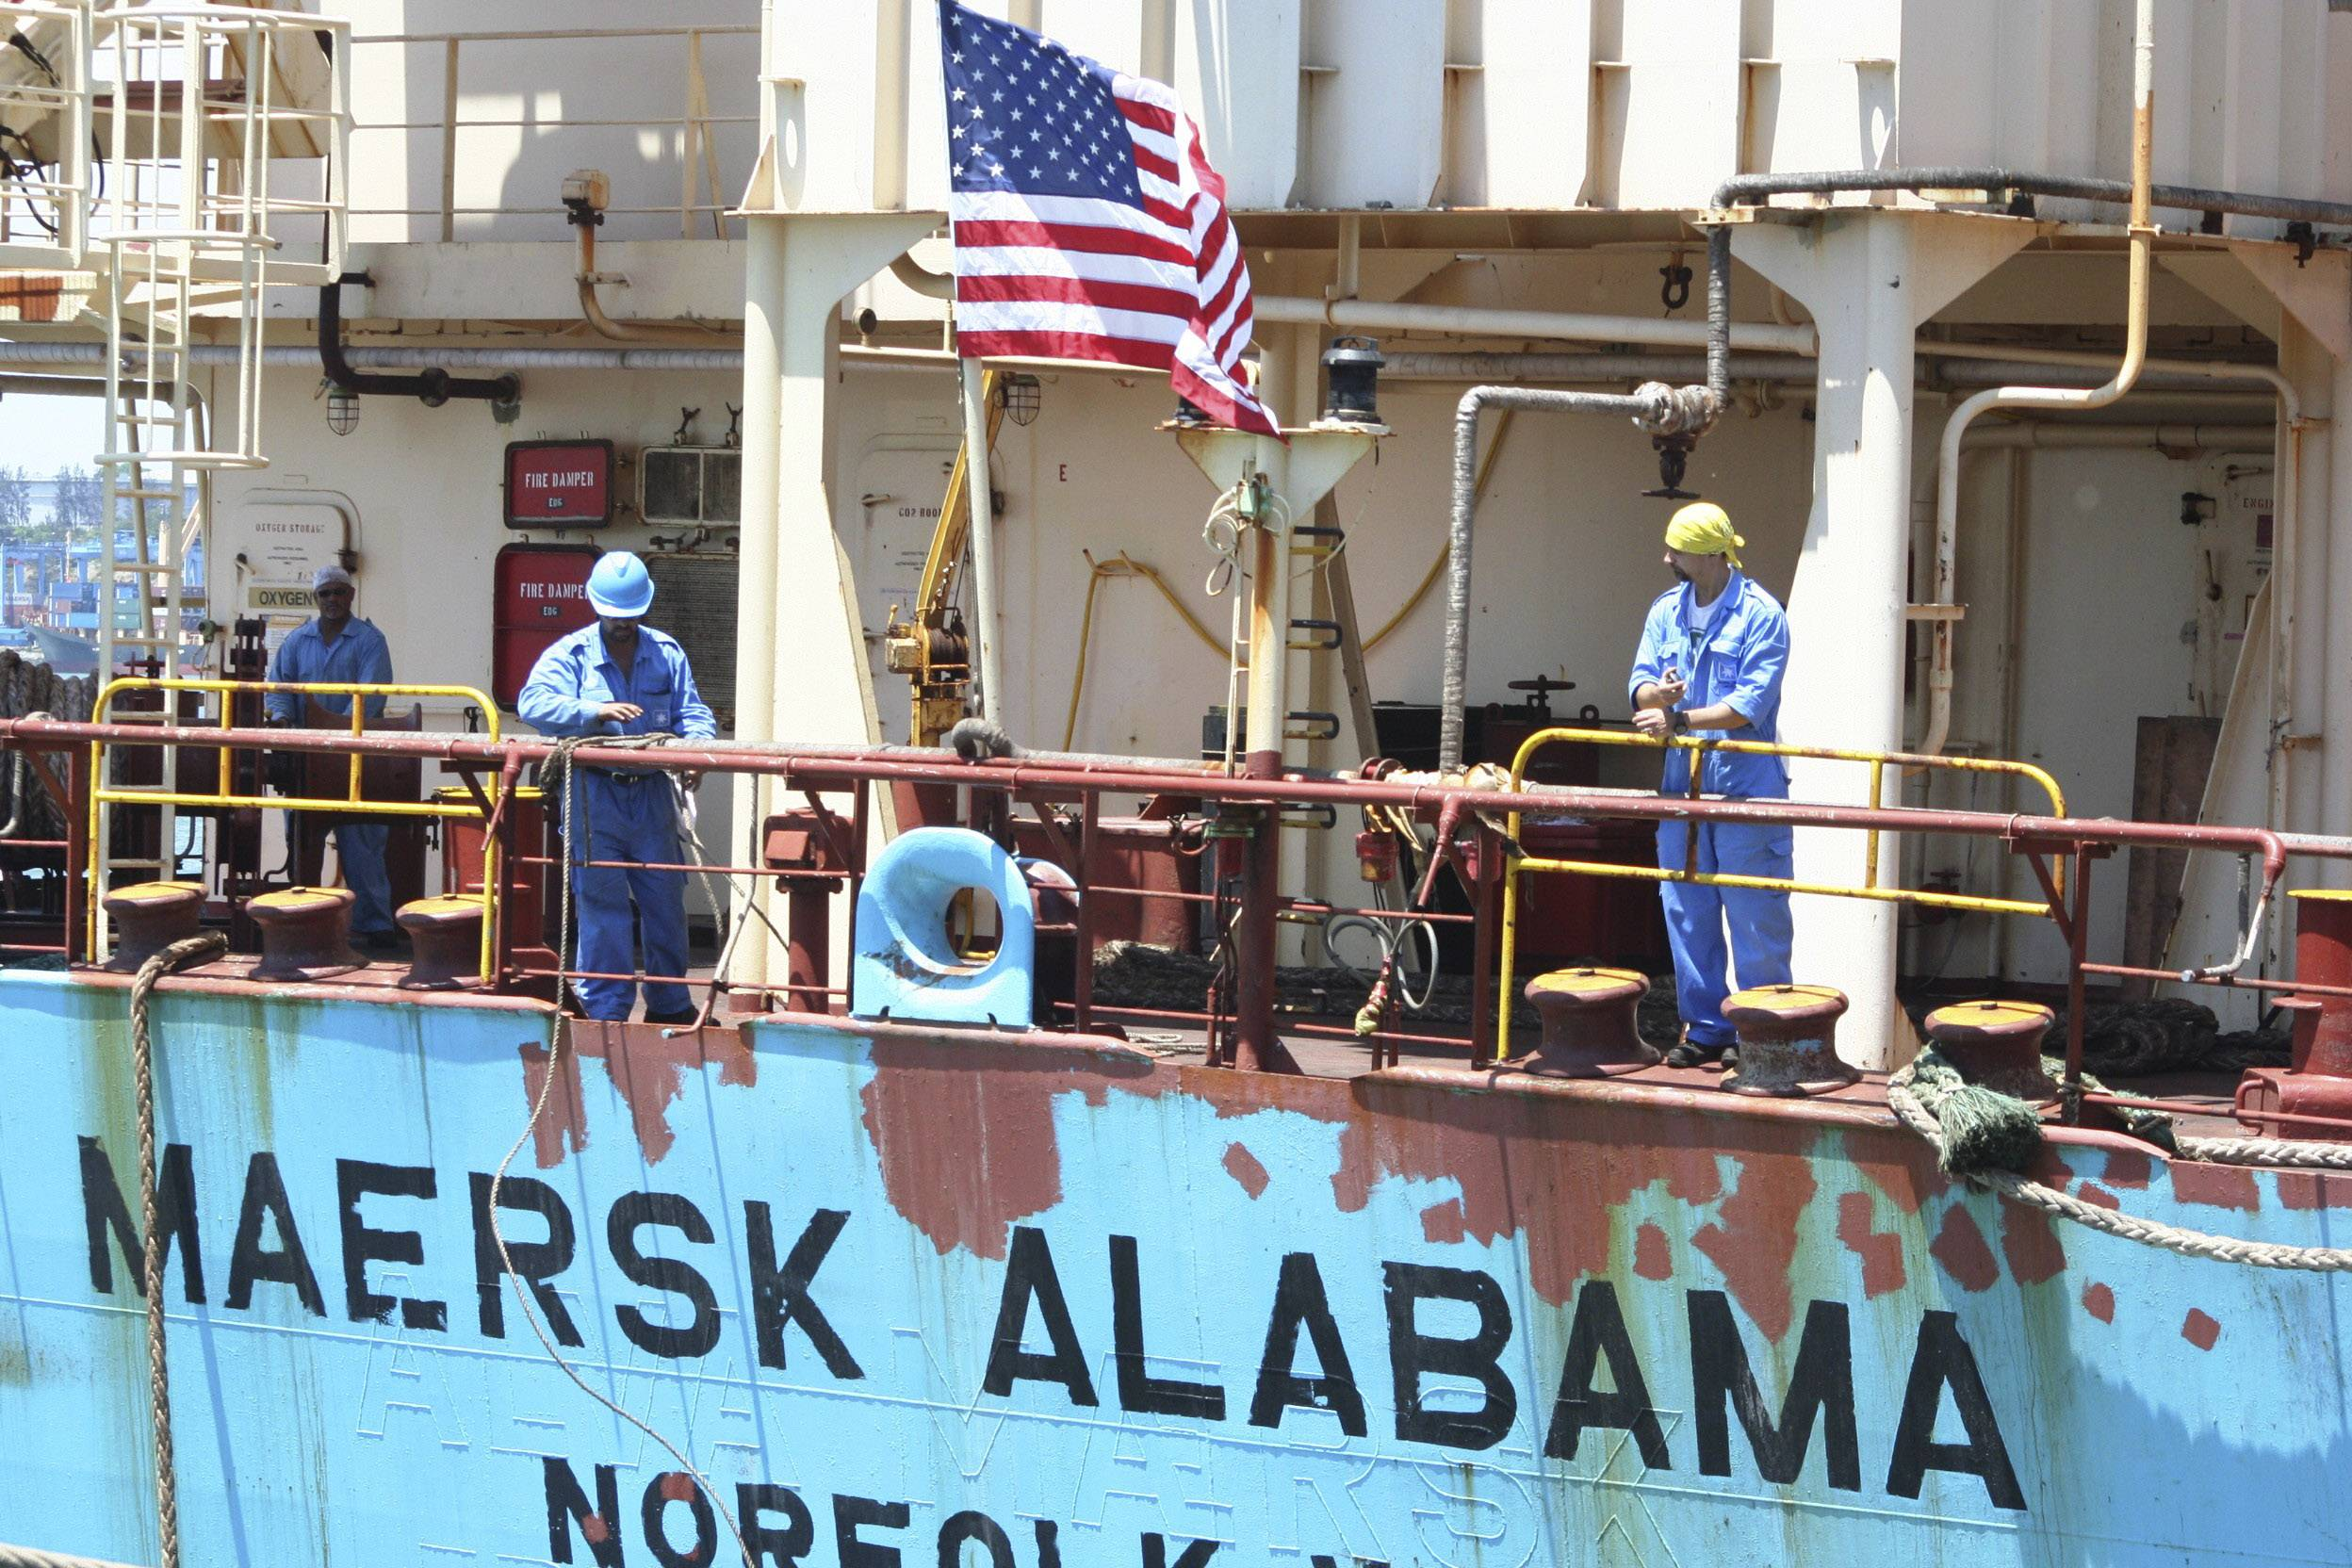 Crew members work aboard the U.S.-flagged Maersk Alabama after the ship docked in the harbour of Mombasa, Kenya, in this Nov. 22, 2009 file photo. Police in the Indian Ocean island nation of Seychelles said Wednesday that two American security officers were found dead Tuesday in a cabin on the Maersk Alabama.